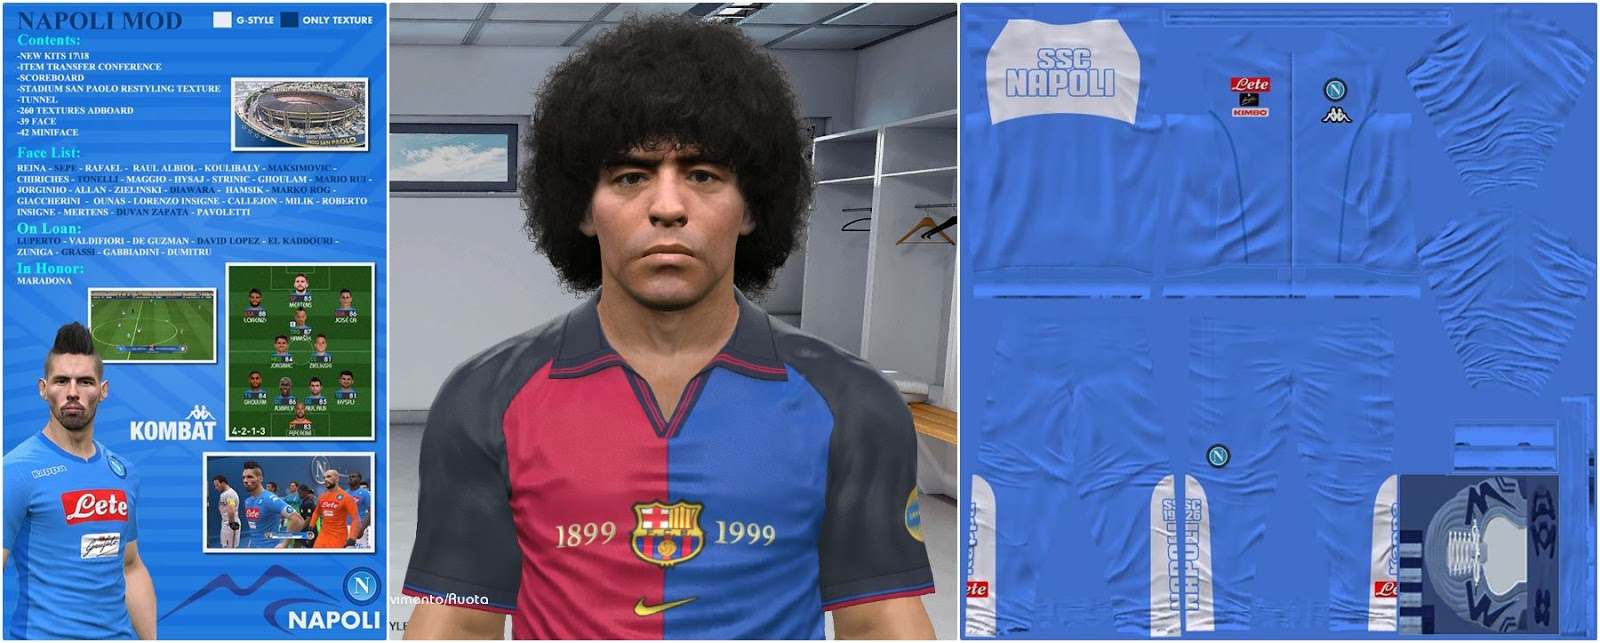 Ultigamerz Pes 2017 Patch 17 Update 2018 Bip Aio Beautiful Indonesia G Napoli Mod New Big Features